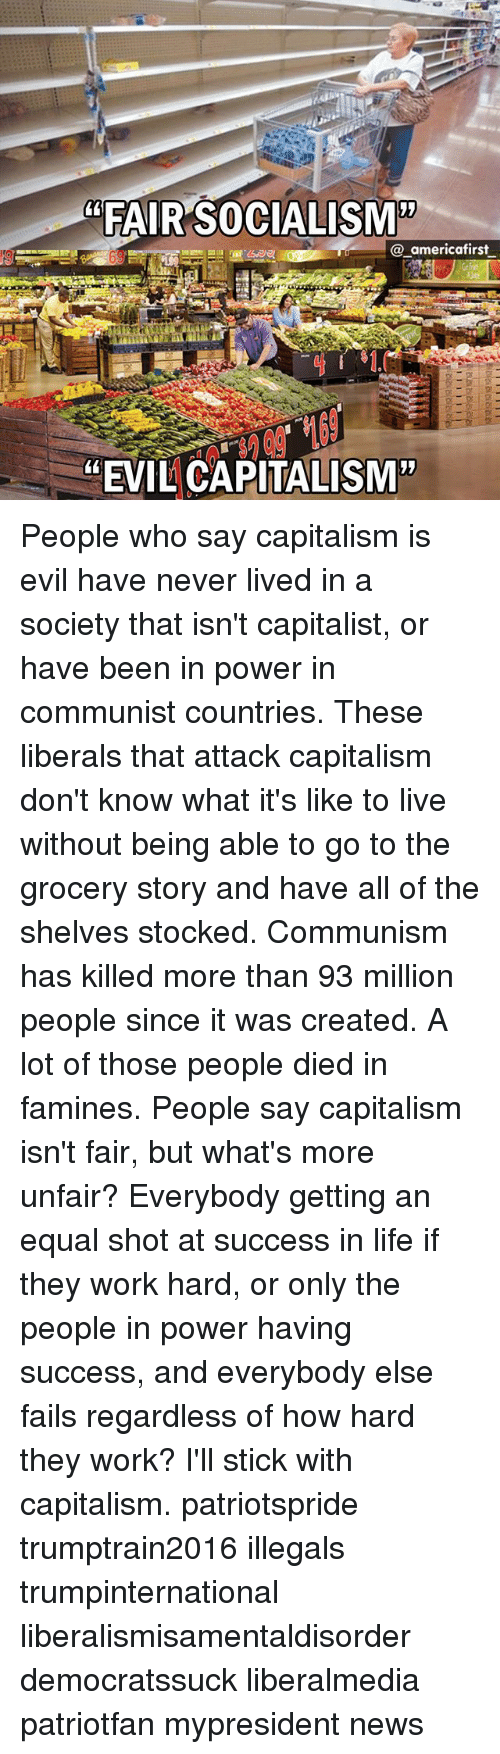 """Life, Memes, and News: """"FAIR SOCIALISM'""""  @_americafirst  """"EVIL CAPITALISM"""" People who say capitalism is evil have never lived in a society that isn't capitalist, or have been in power in communist countries. These liberals that attack capitalism don't know what it's like to live without being able to go to the grocery story and have all of the shelves stocked. Communism has killed more than 93 million people since it was created. A lot of those people died in famines. People say capitalism isn't fair, but what's more unfair? Everybody getting an equal shot at success in life if they work hard, or only the people in power having success, and everybody else fails regardless of how hard they work? I'll stick with capitalism. patriotspride trumptrain2016 illegals trumpinternational liberalismisamentaldisorder democratssuck liberalmedia patriotfan mypresident news"""